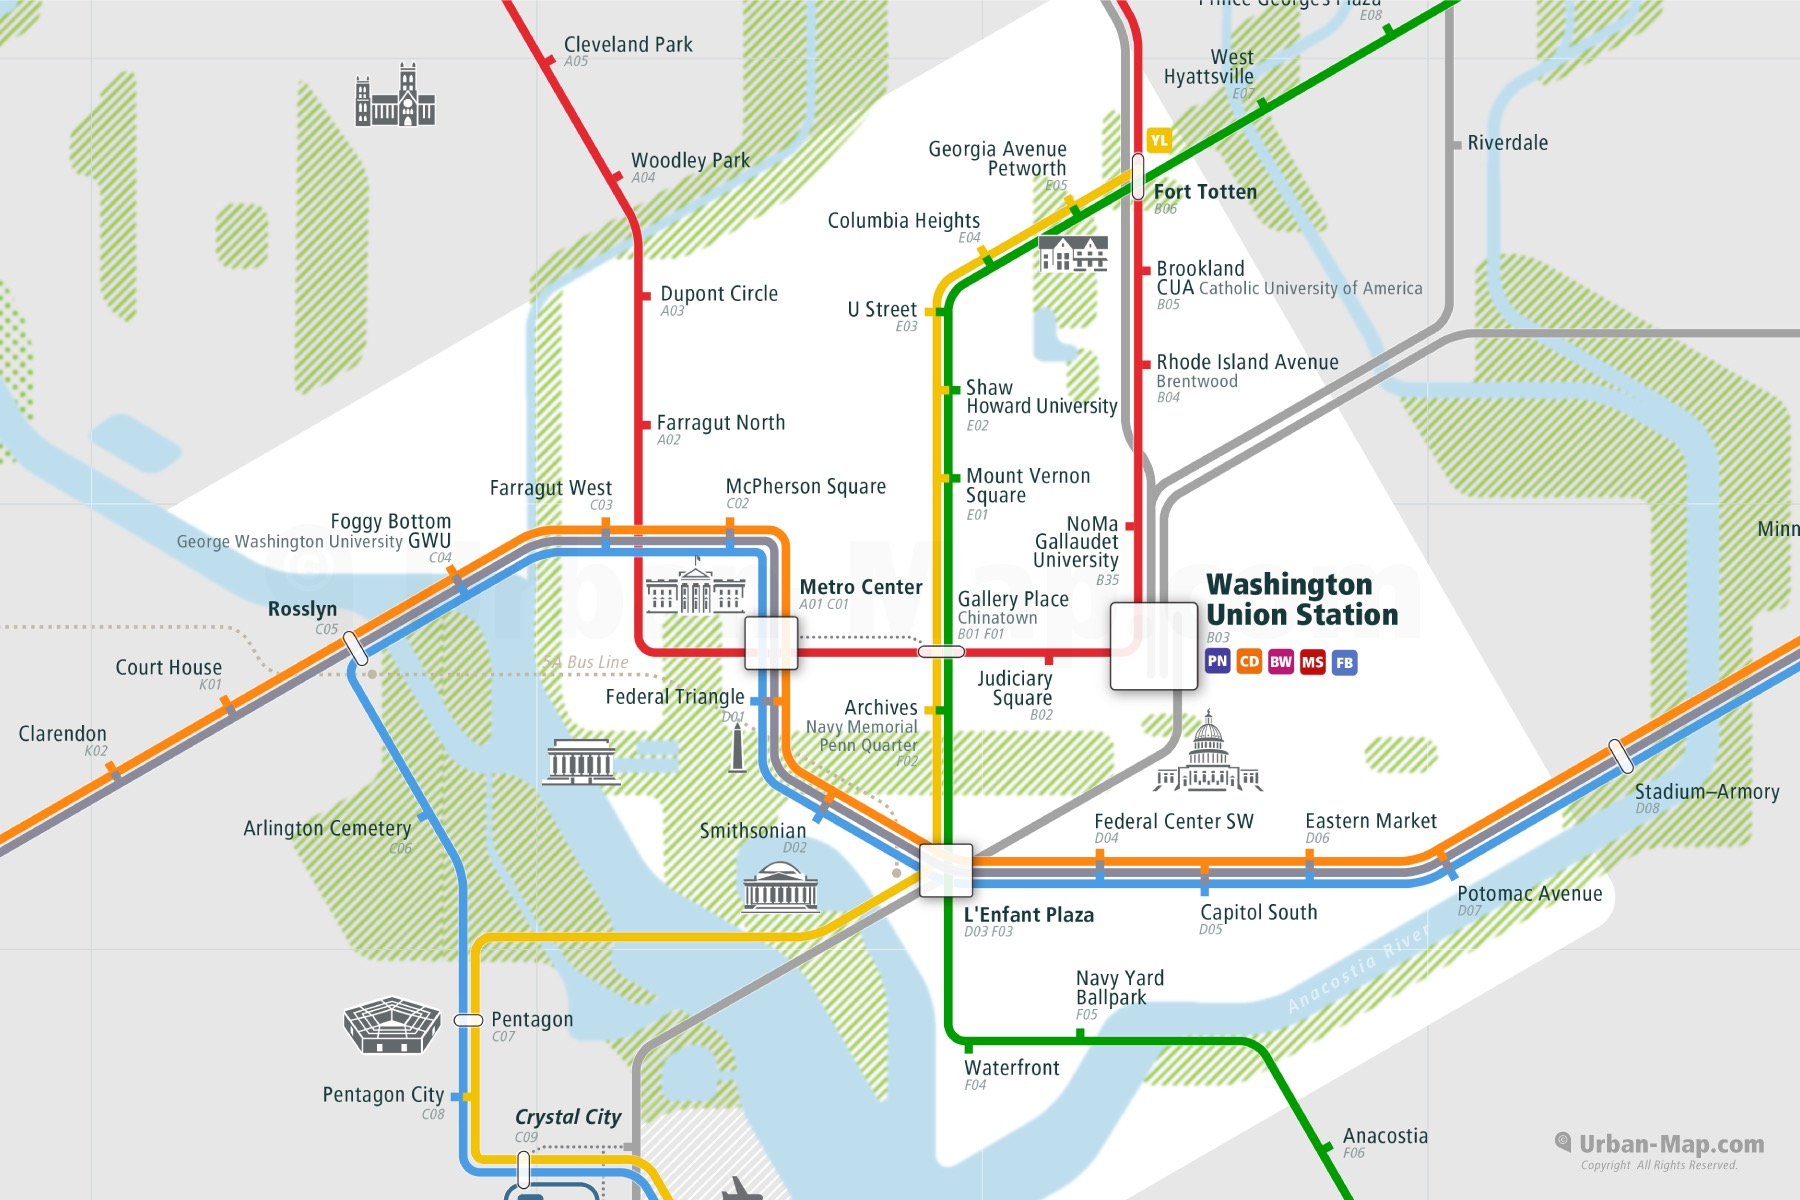 Washington City Rail Map shows the train and public transportation routes of Metro, Commuter Train - Close-Up